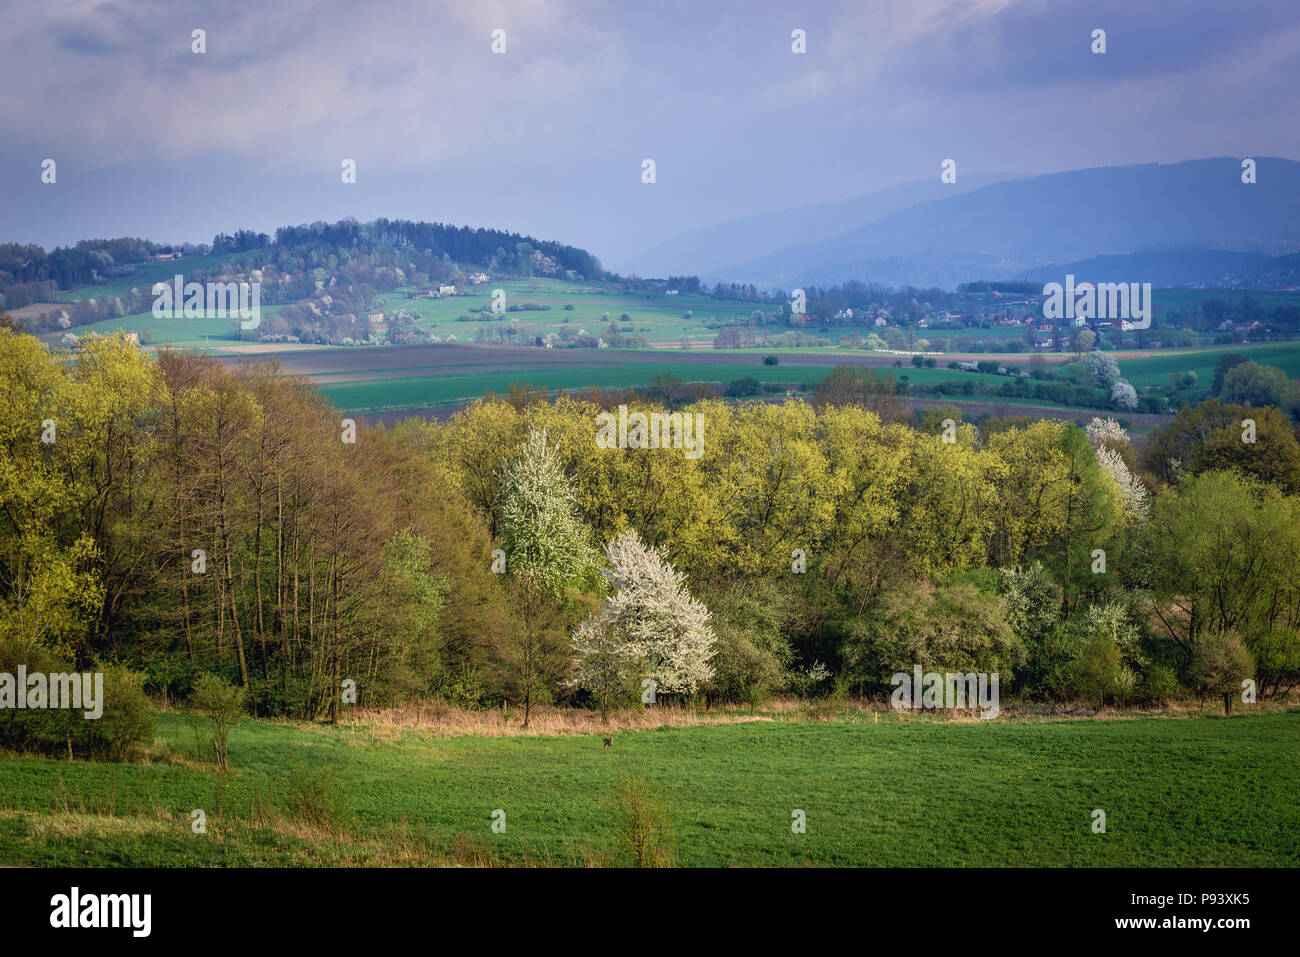 Aerial view of rural landscape near Bielsko-Biala city in Silesian Voivodeship of Poland - Stock Image